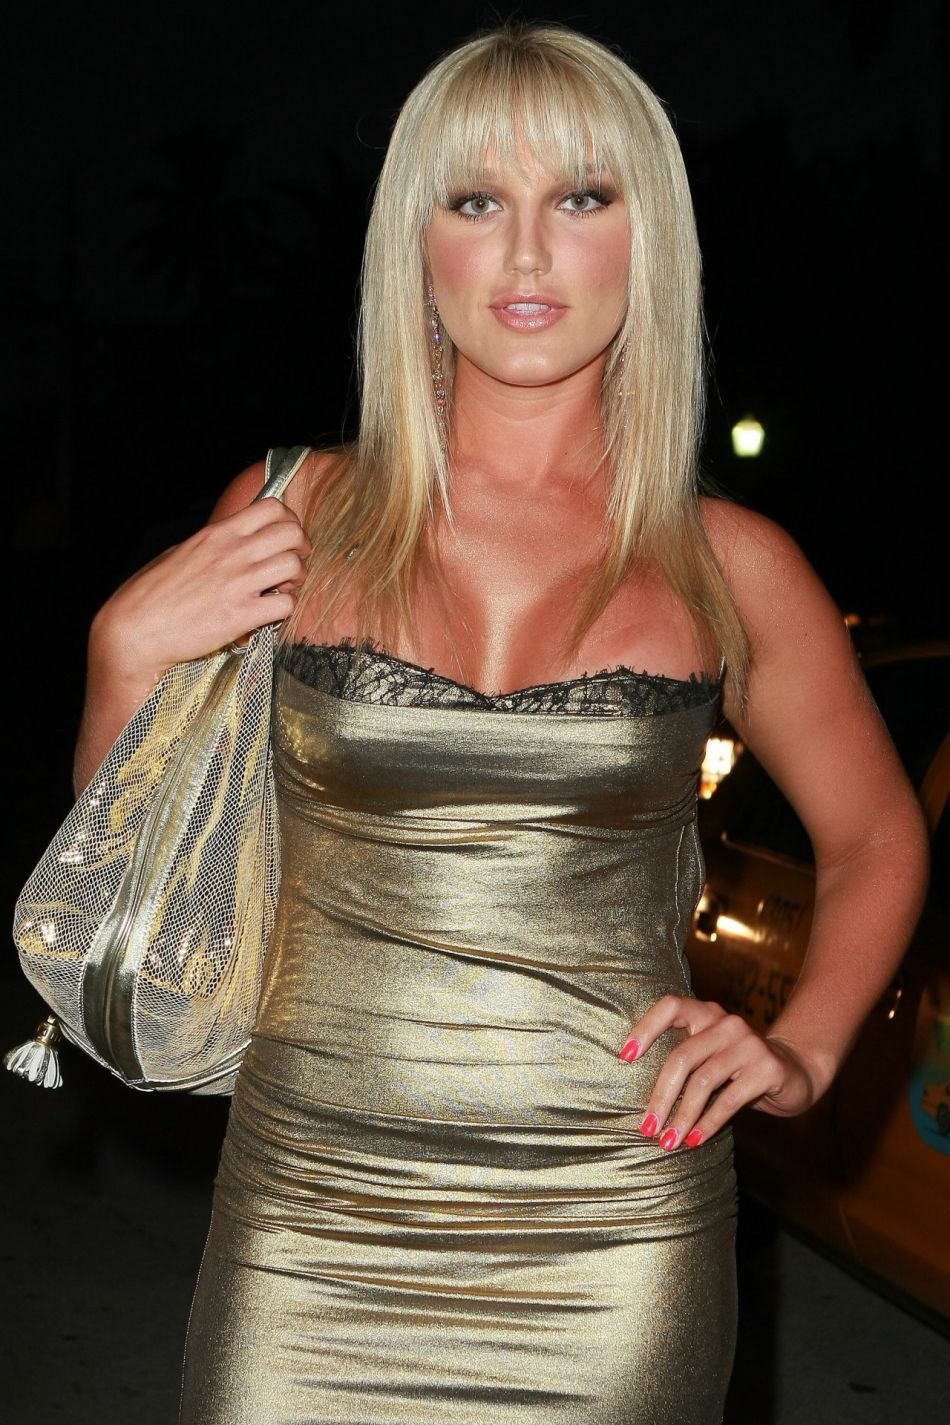 Brooke Hogan photo #156241